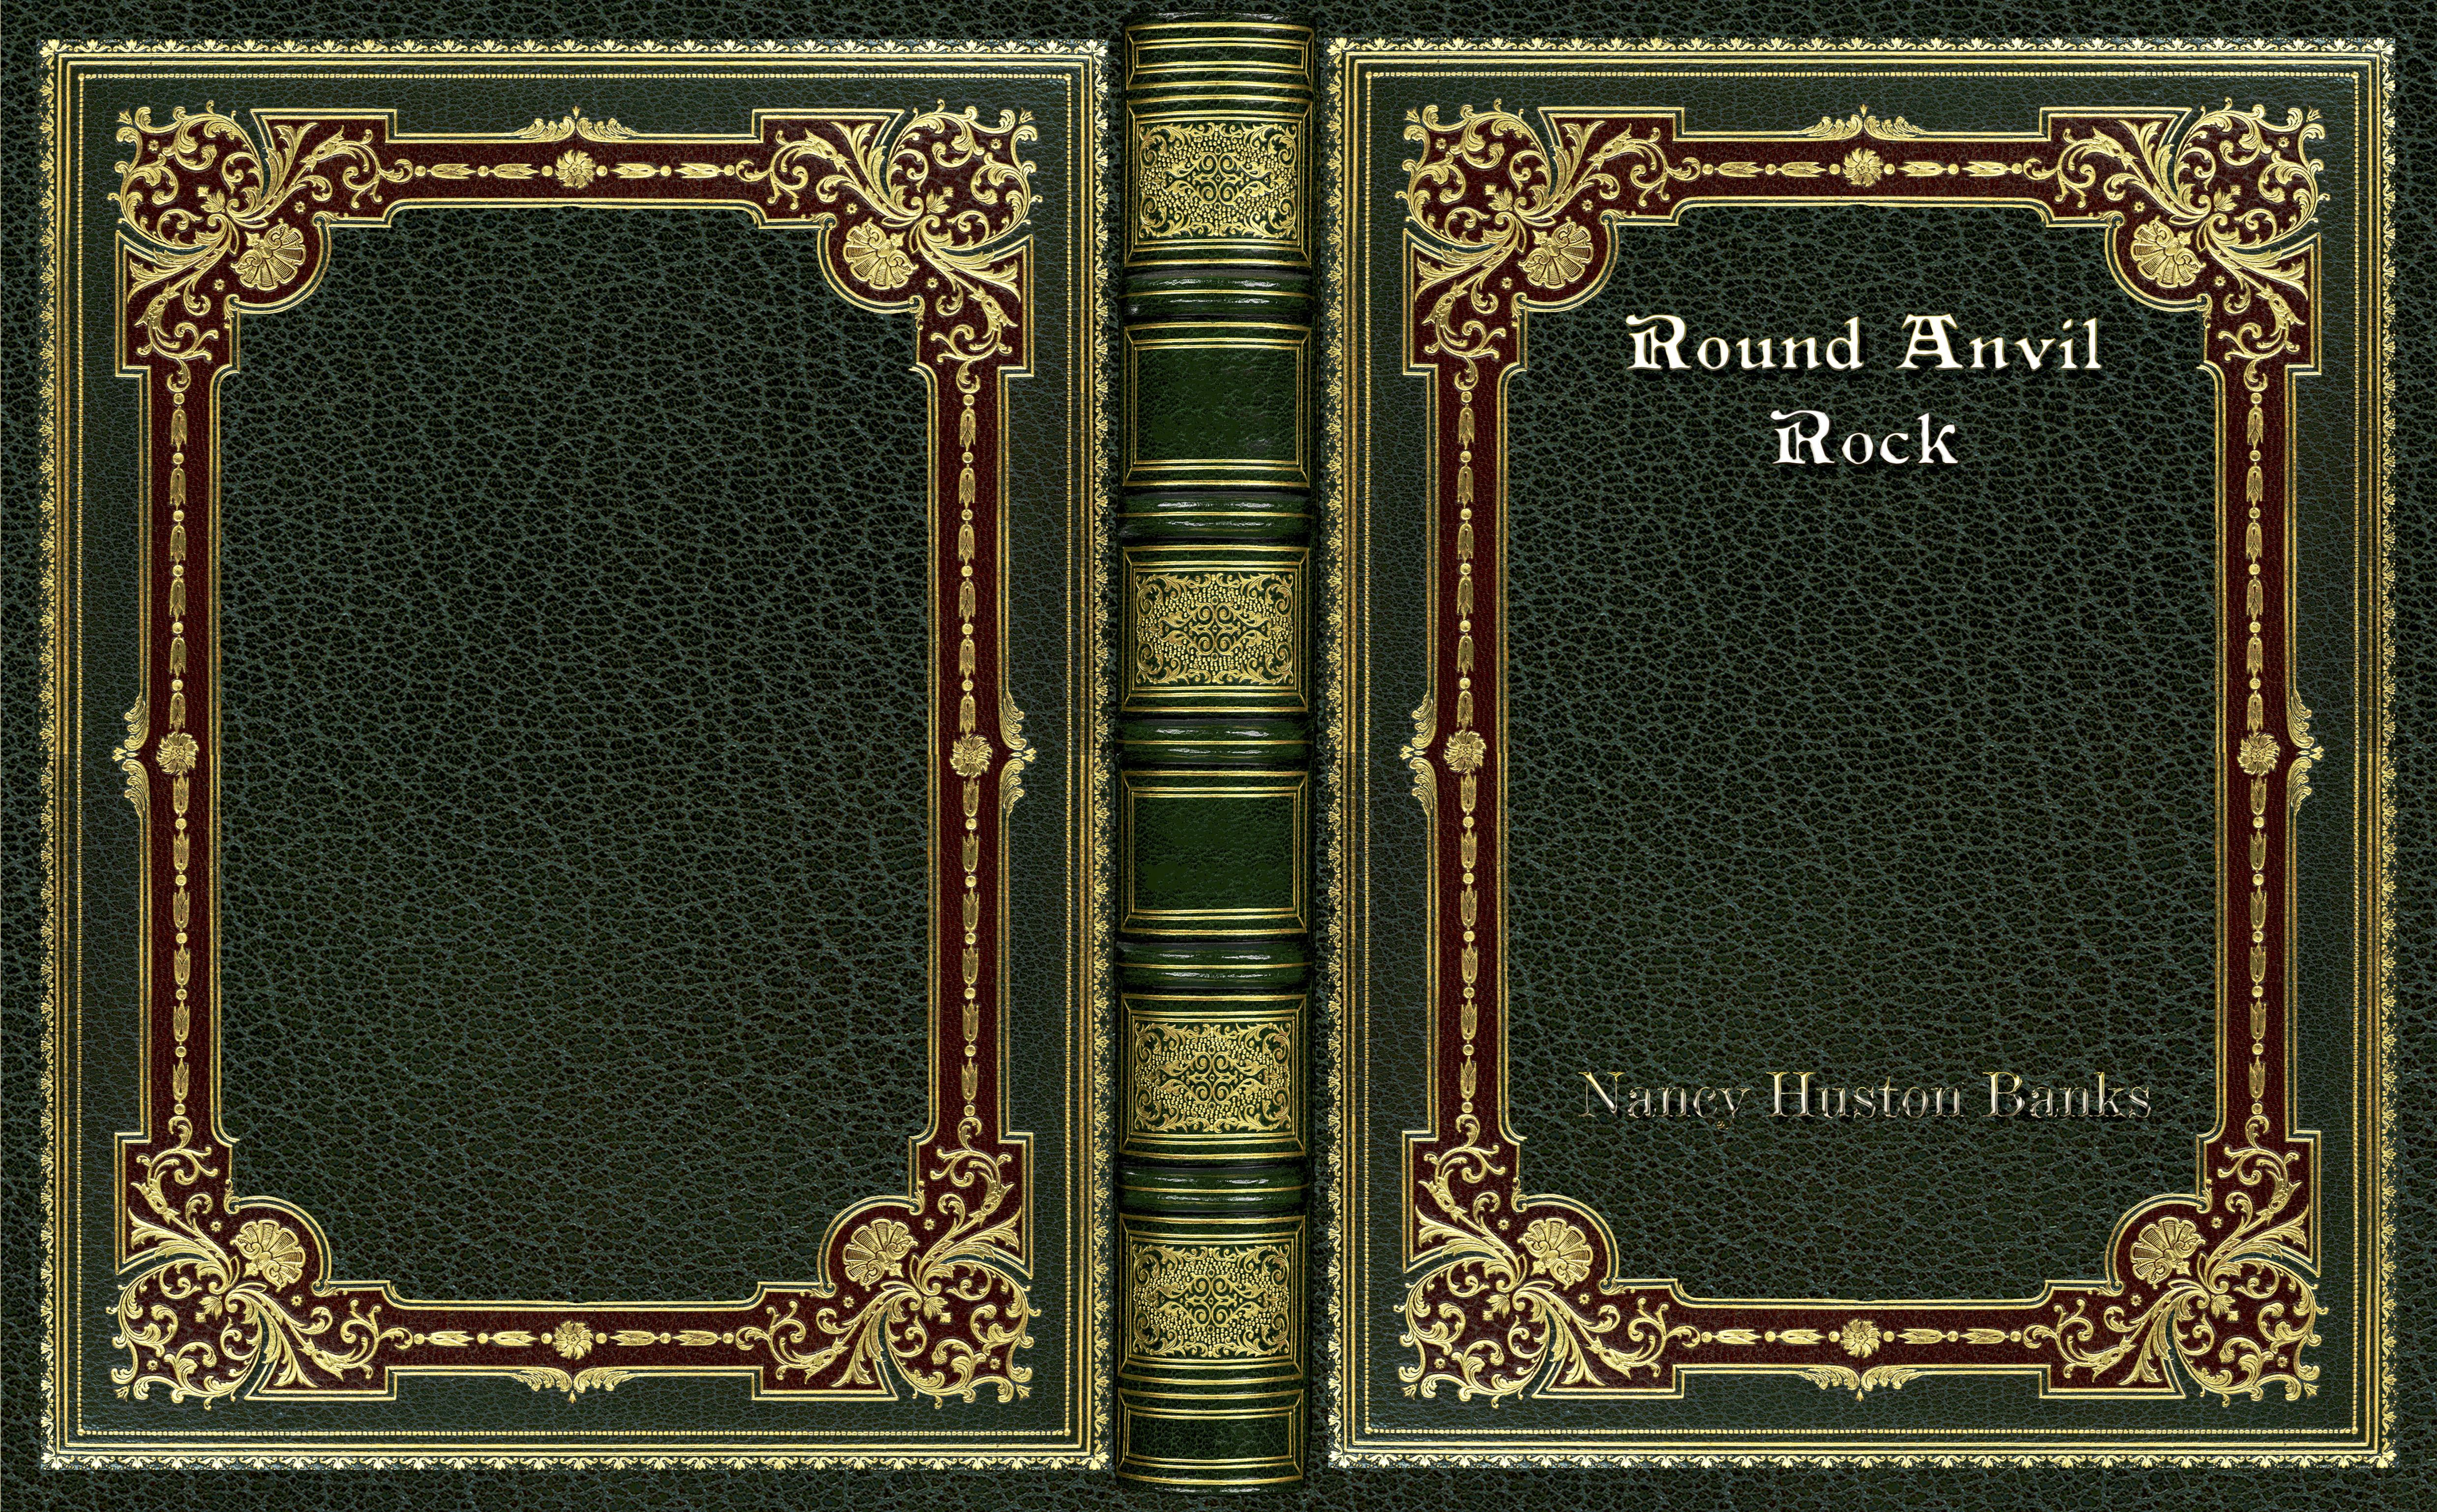 Round Anvil Rock cover image